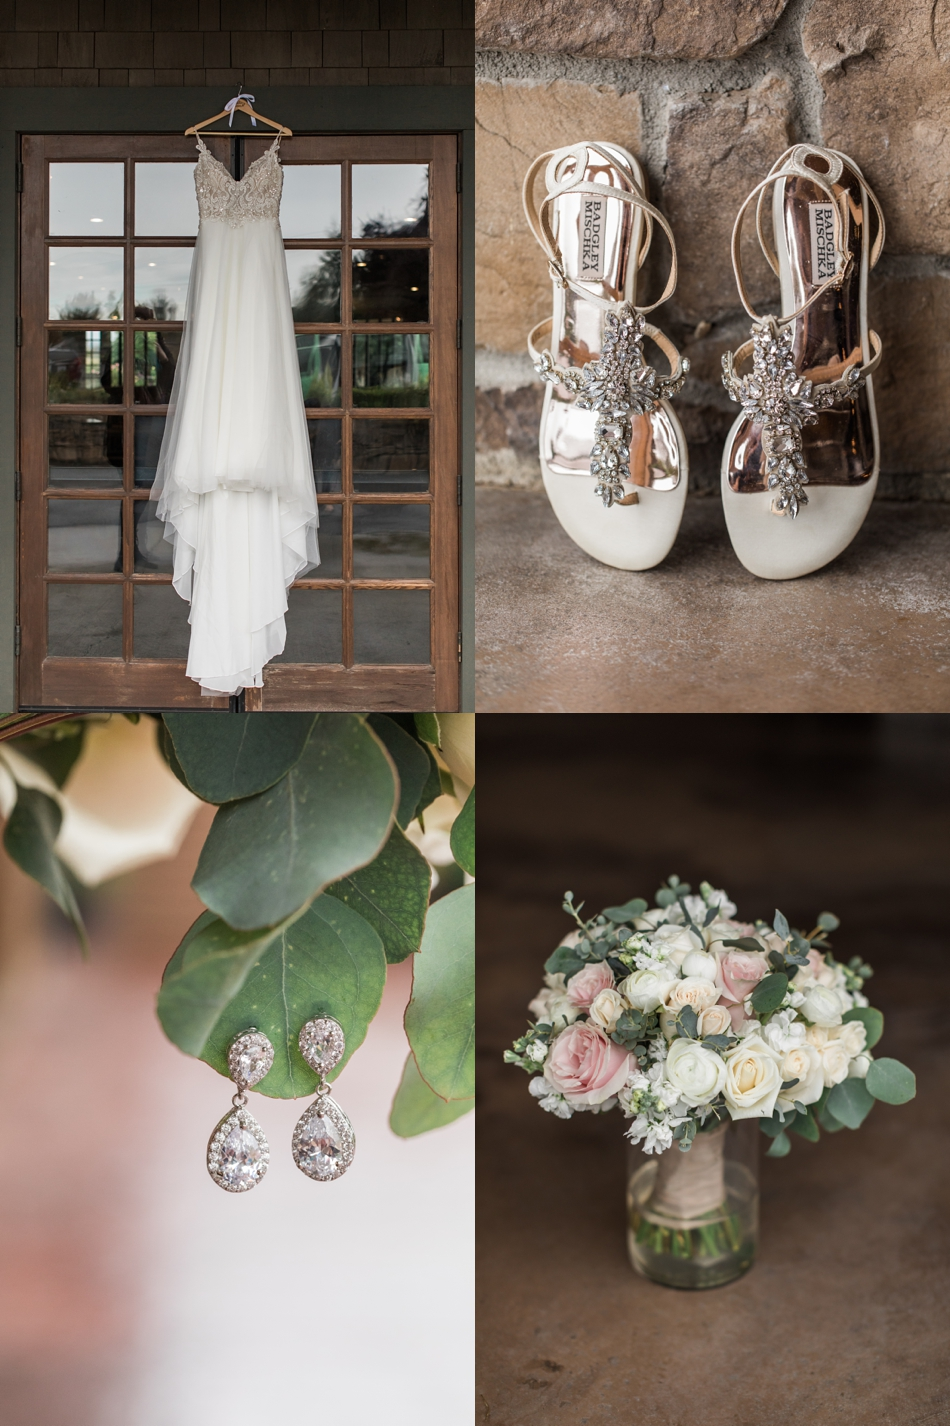 Photo of wedding gown, jewelry, shoes, and bouquet for a Hidden Meadows Farms wedding in Snohomish, a rustic yet elegant wedding venue near Seattle. | Joanna Monger Photography